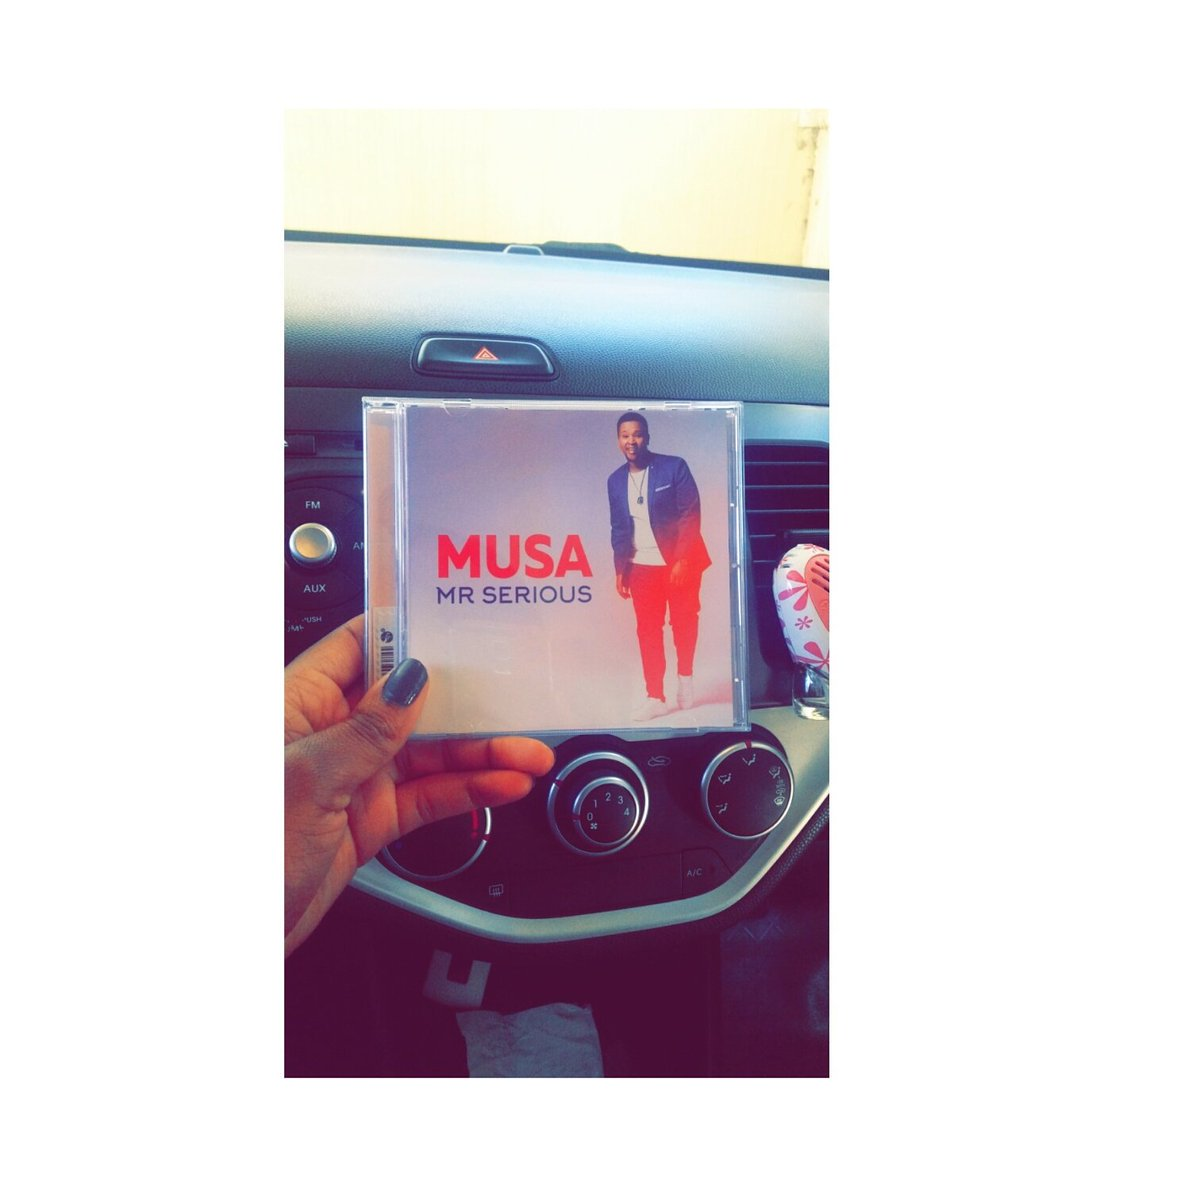 Support Local Music ❤❤✊✊ Love him @Musathevoice